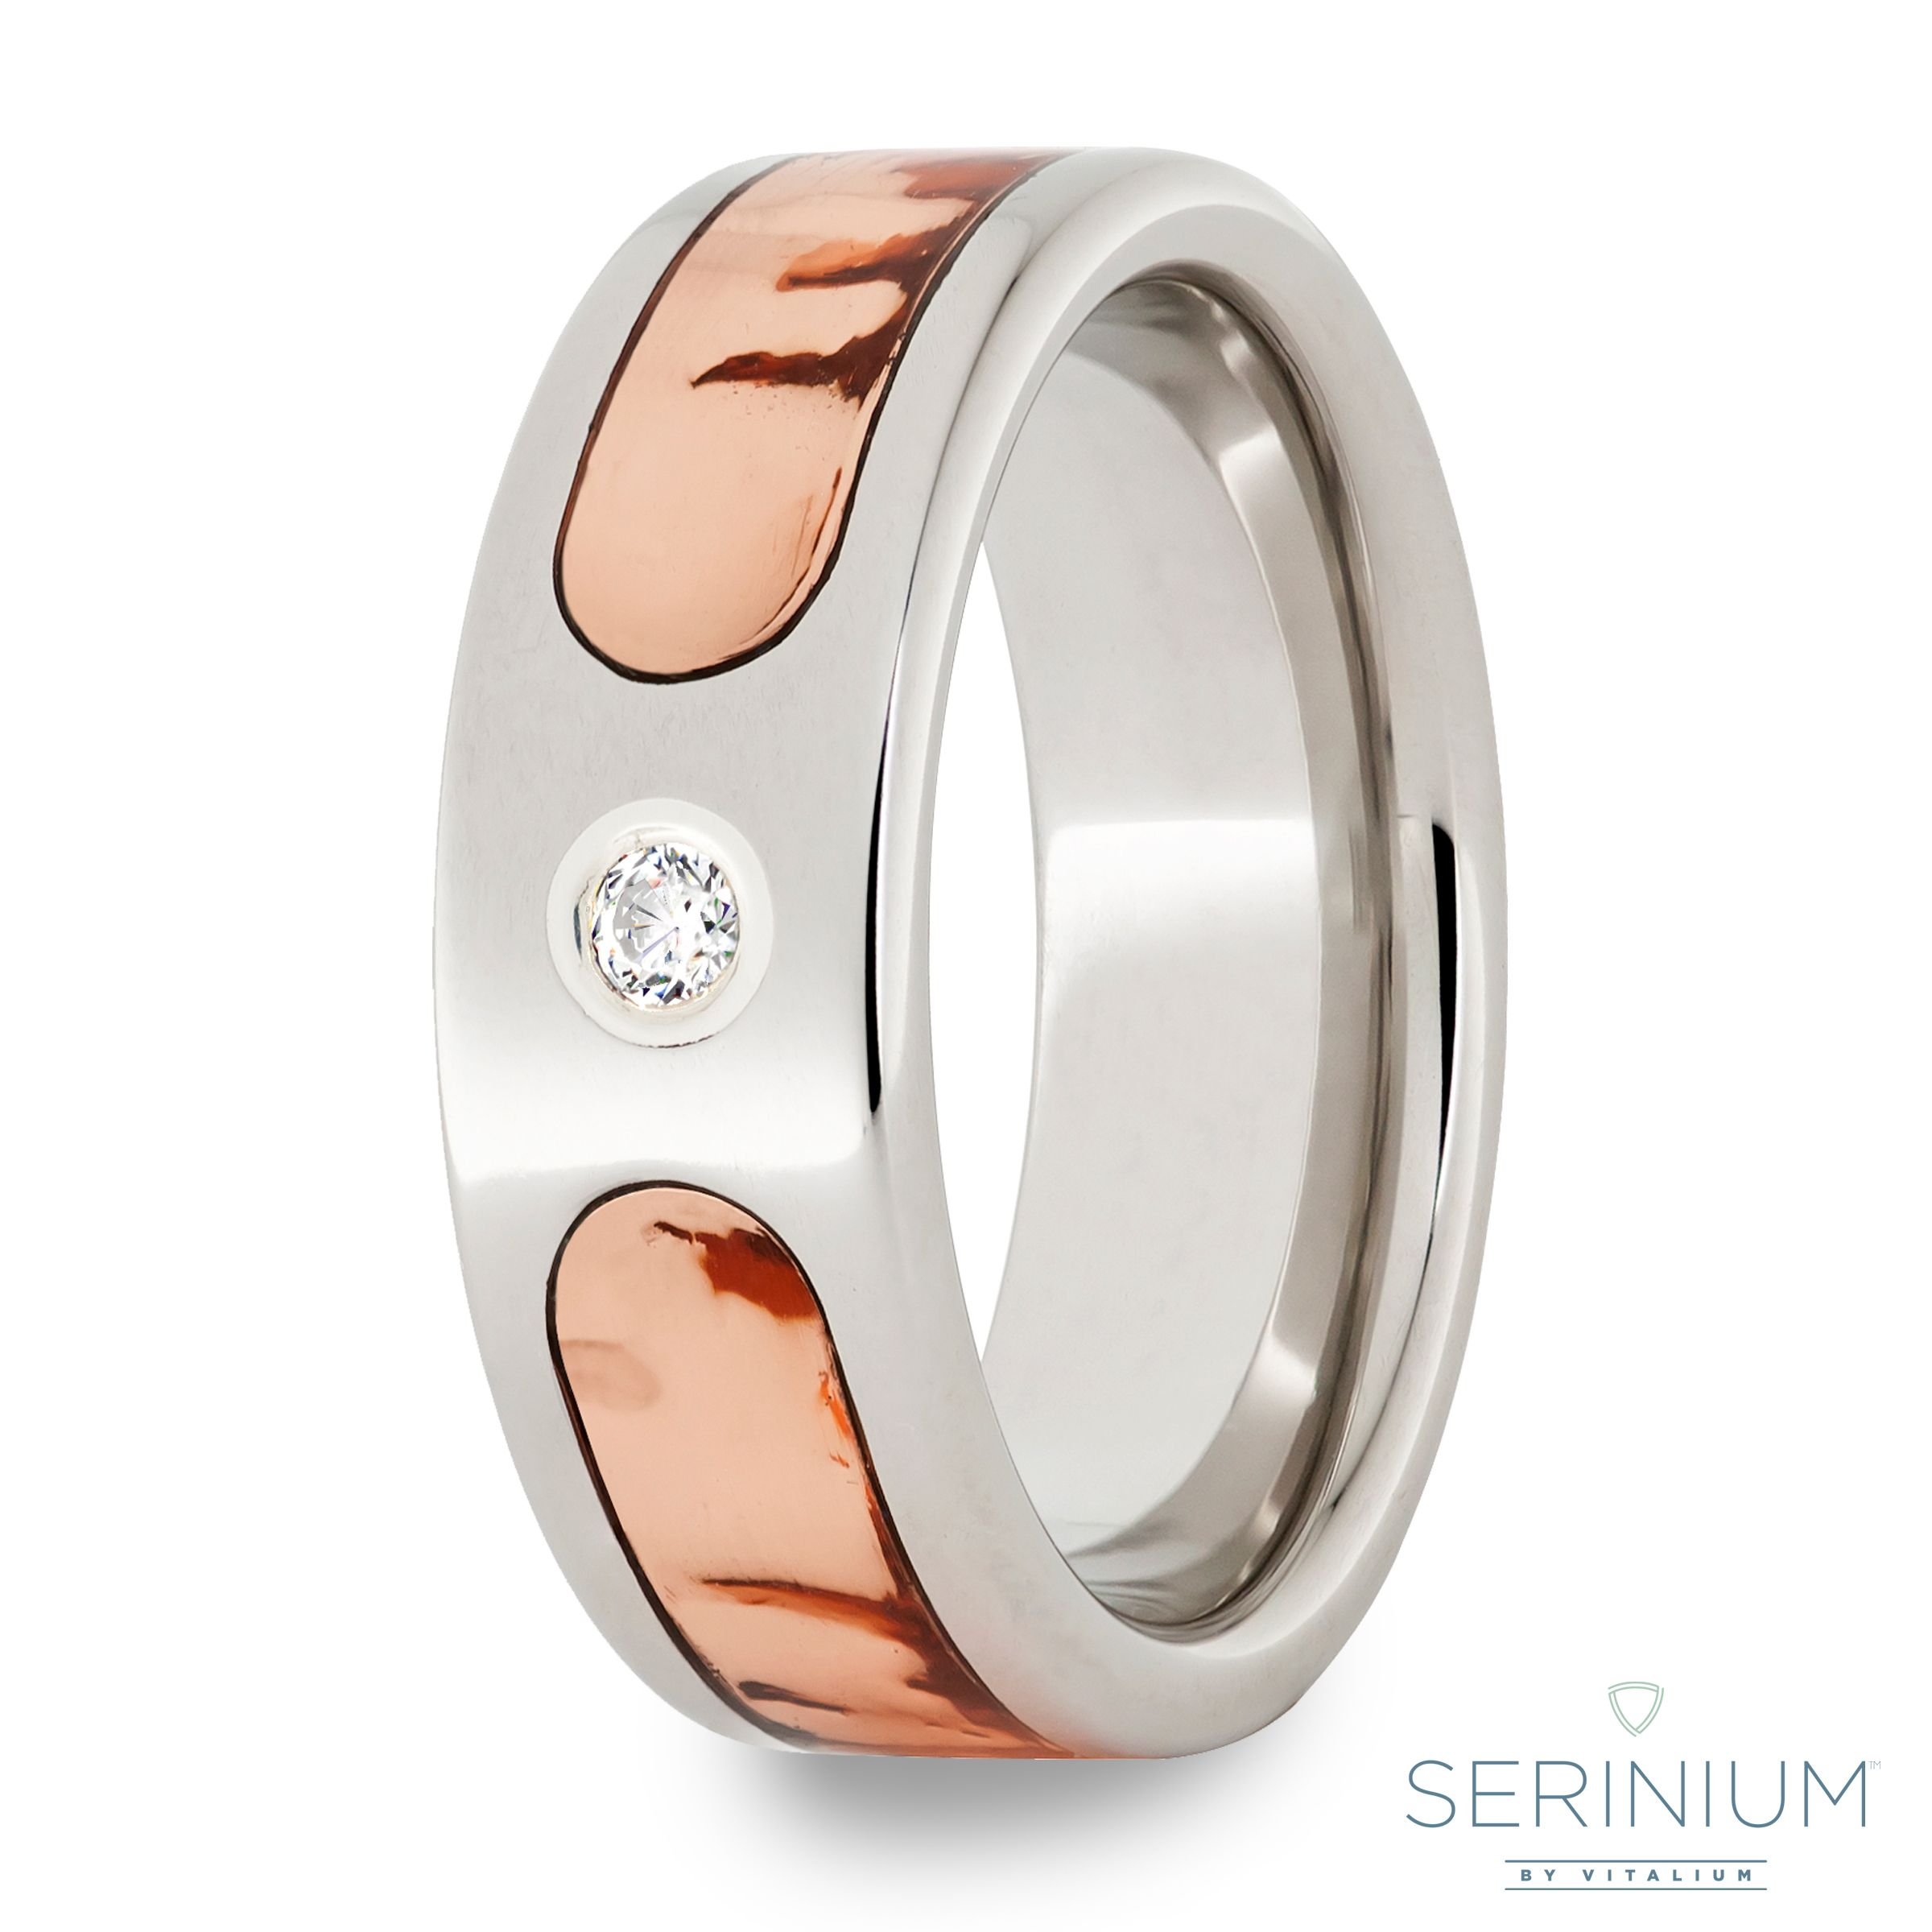 Serinium Band With Copper Virginia Inlay, .06R CZ